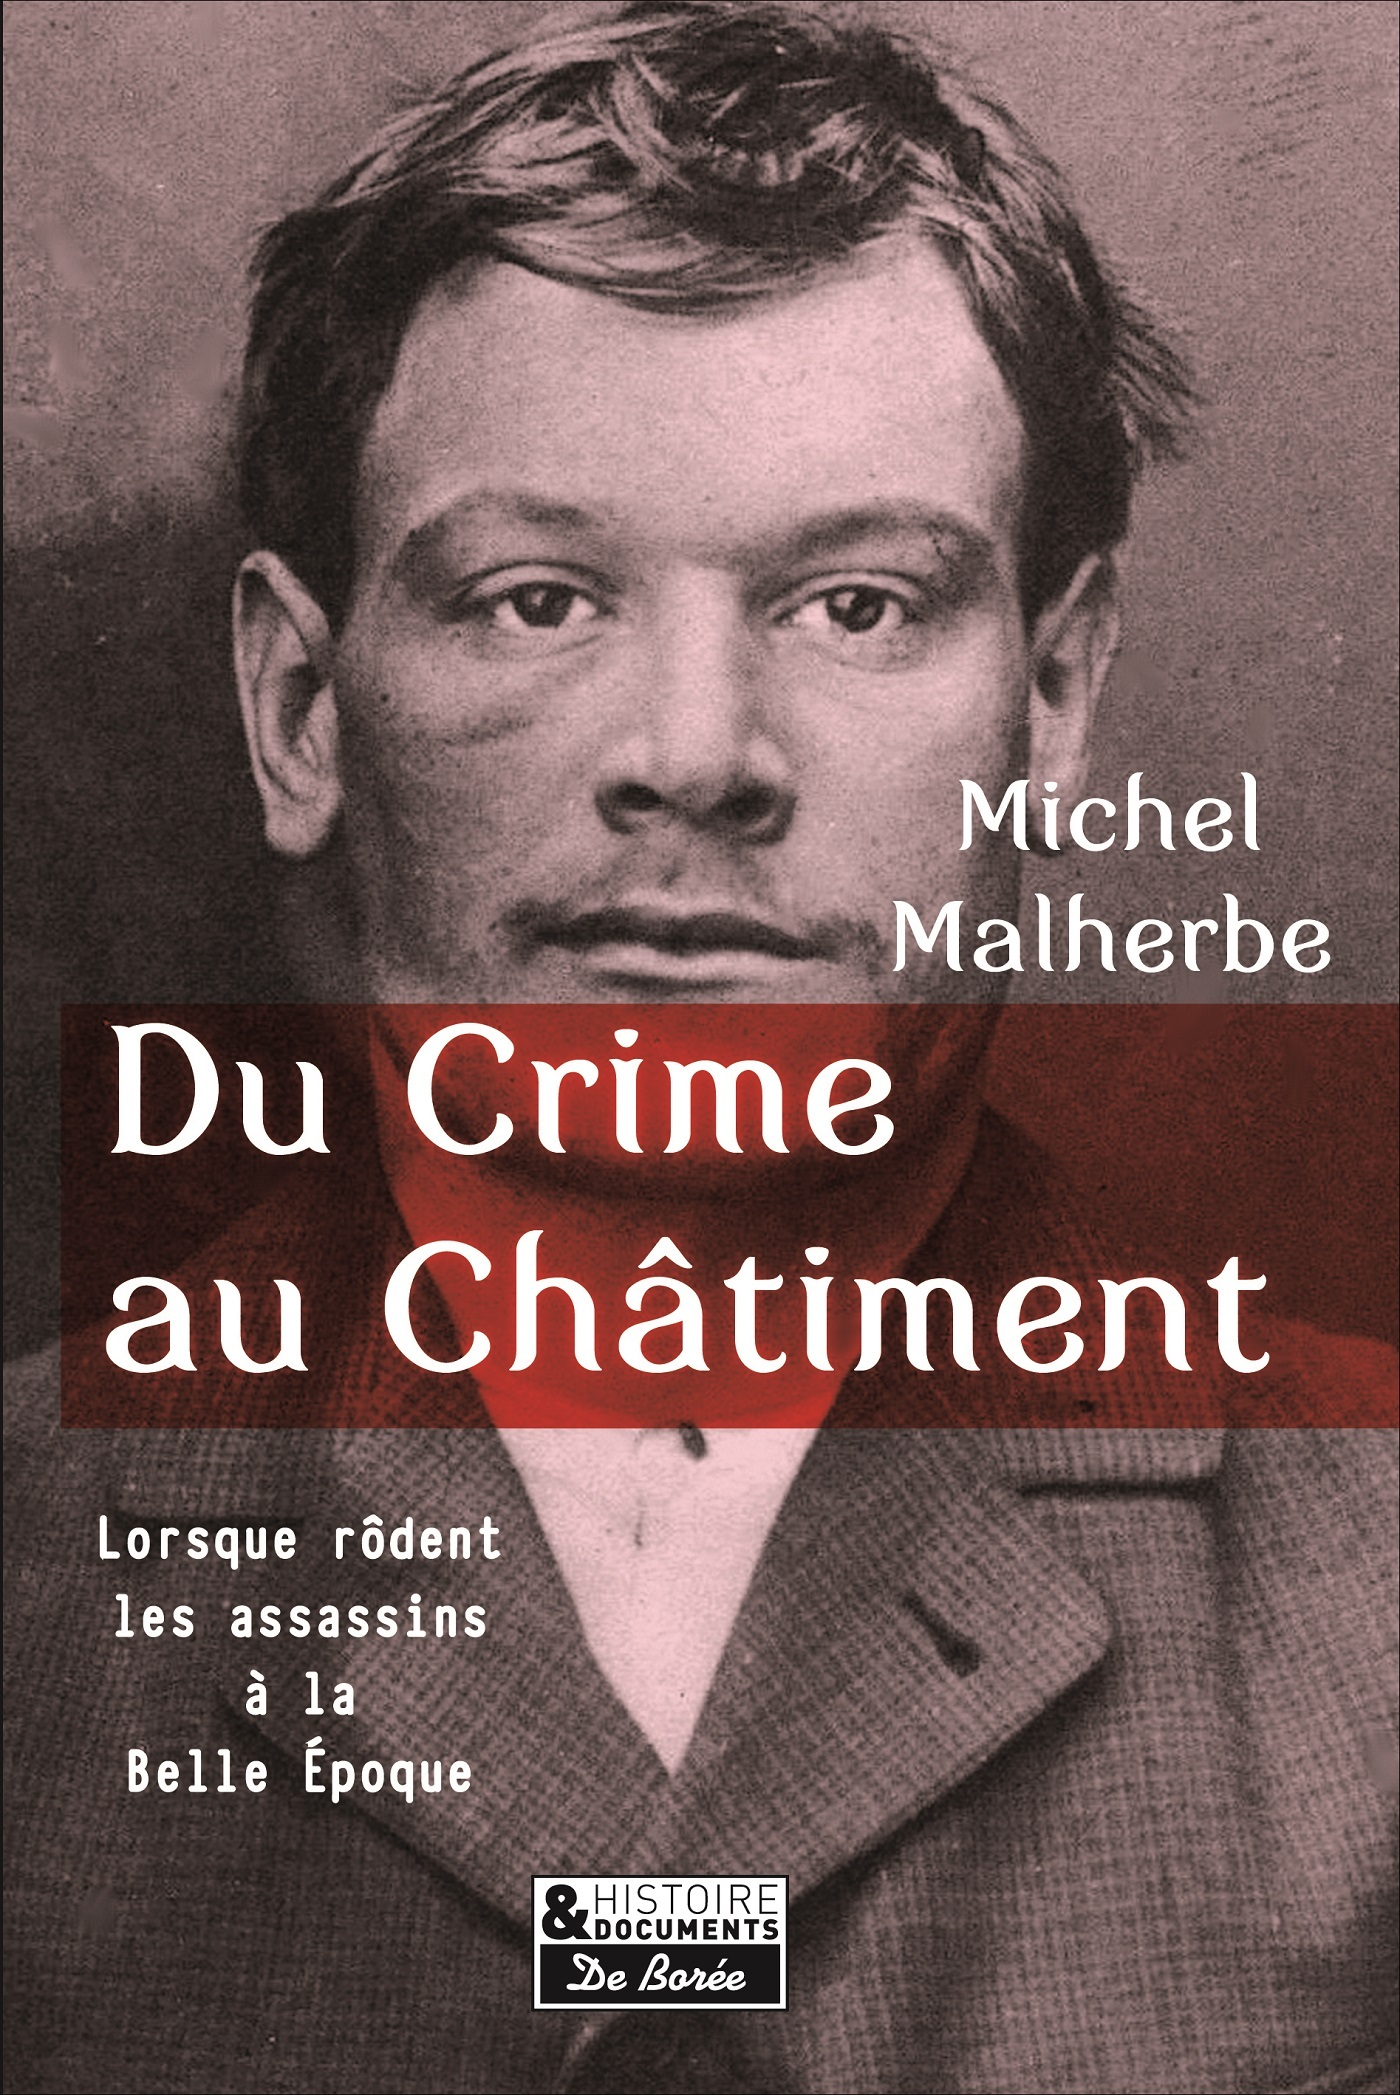 DU CRIME AU CHATIMENT